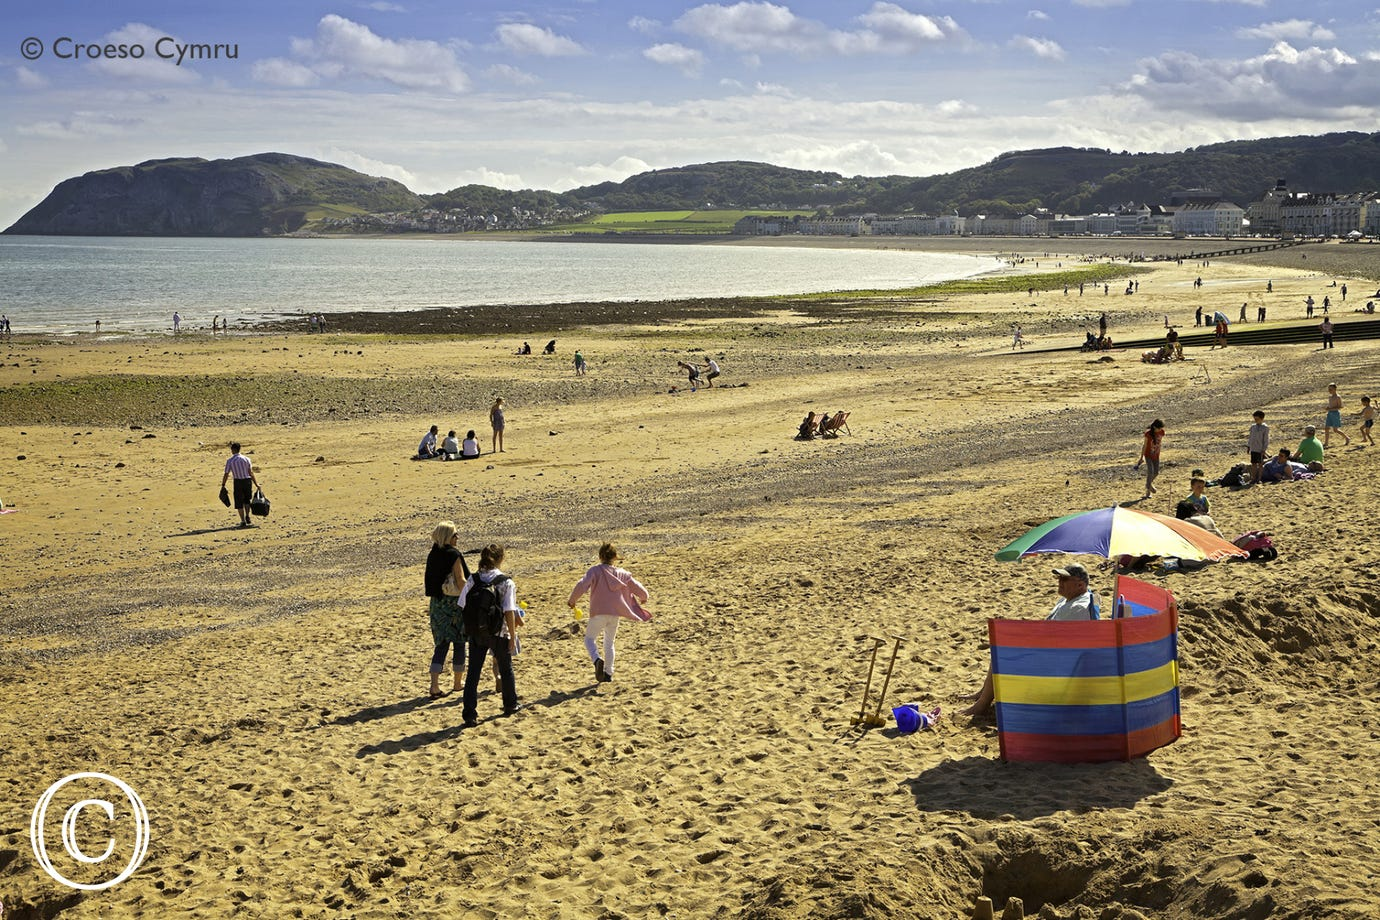 One of two beaches in Llandudno (4.5 miles)